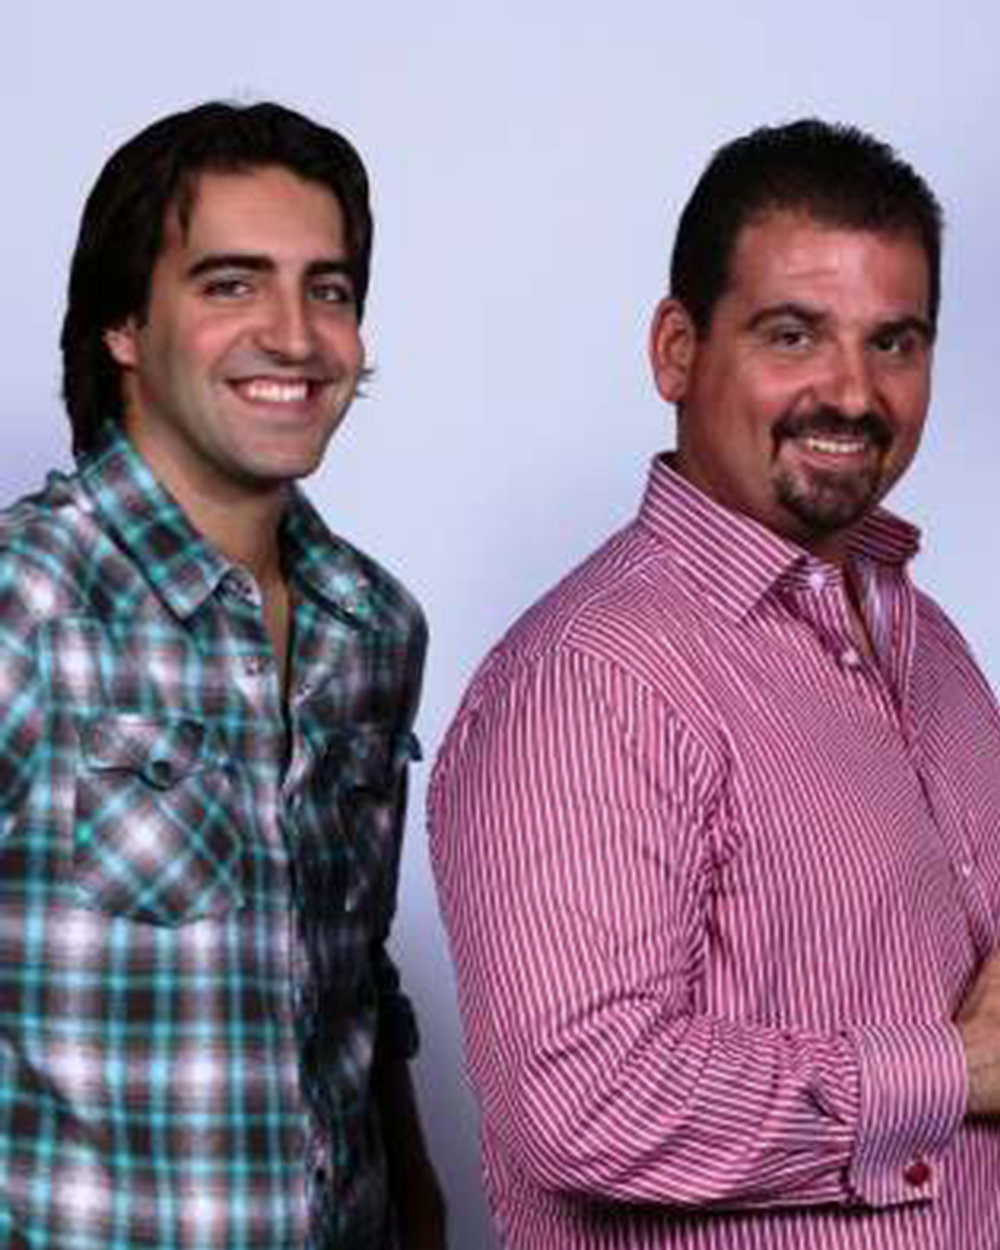 Ryan (left) with journalist and ESPN Radio personality Dan Le Batard. (Image via Sports Talk 790 AM The Ticket)